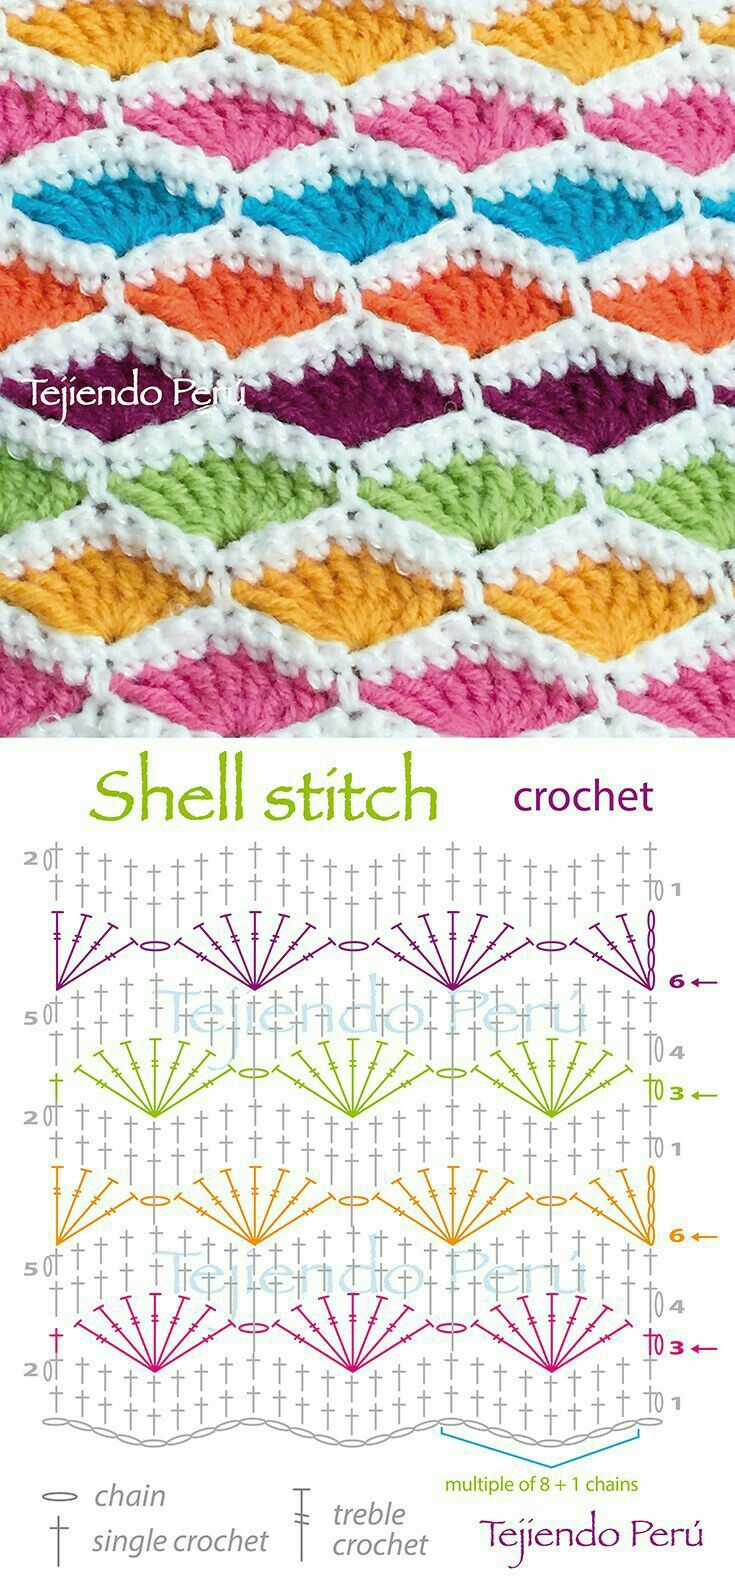 Pin by Simone Wood on snuggly crochet | Pinterest | Crochet